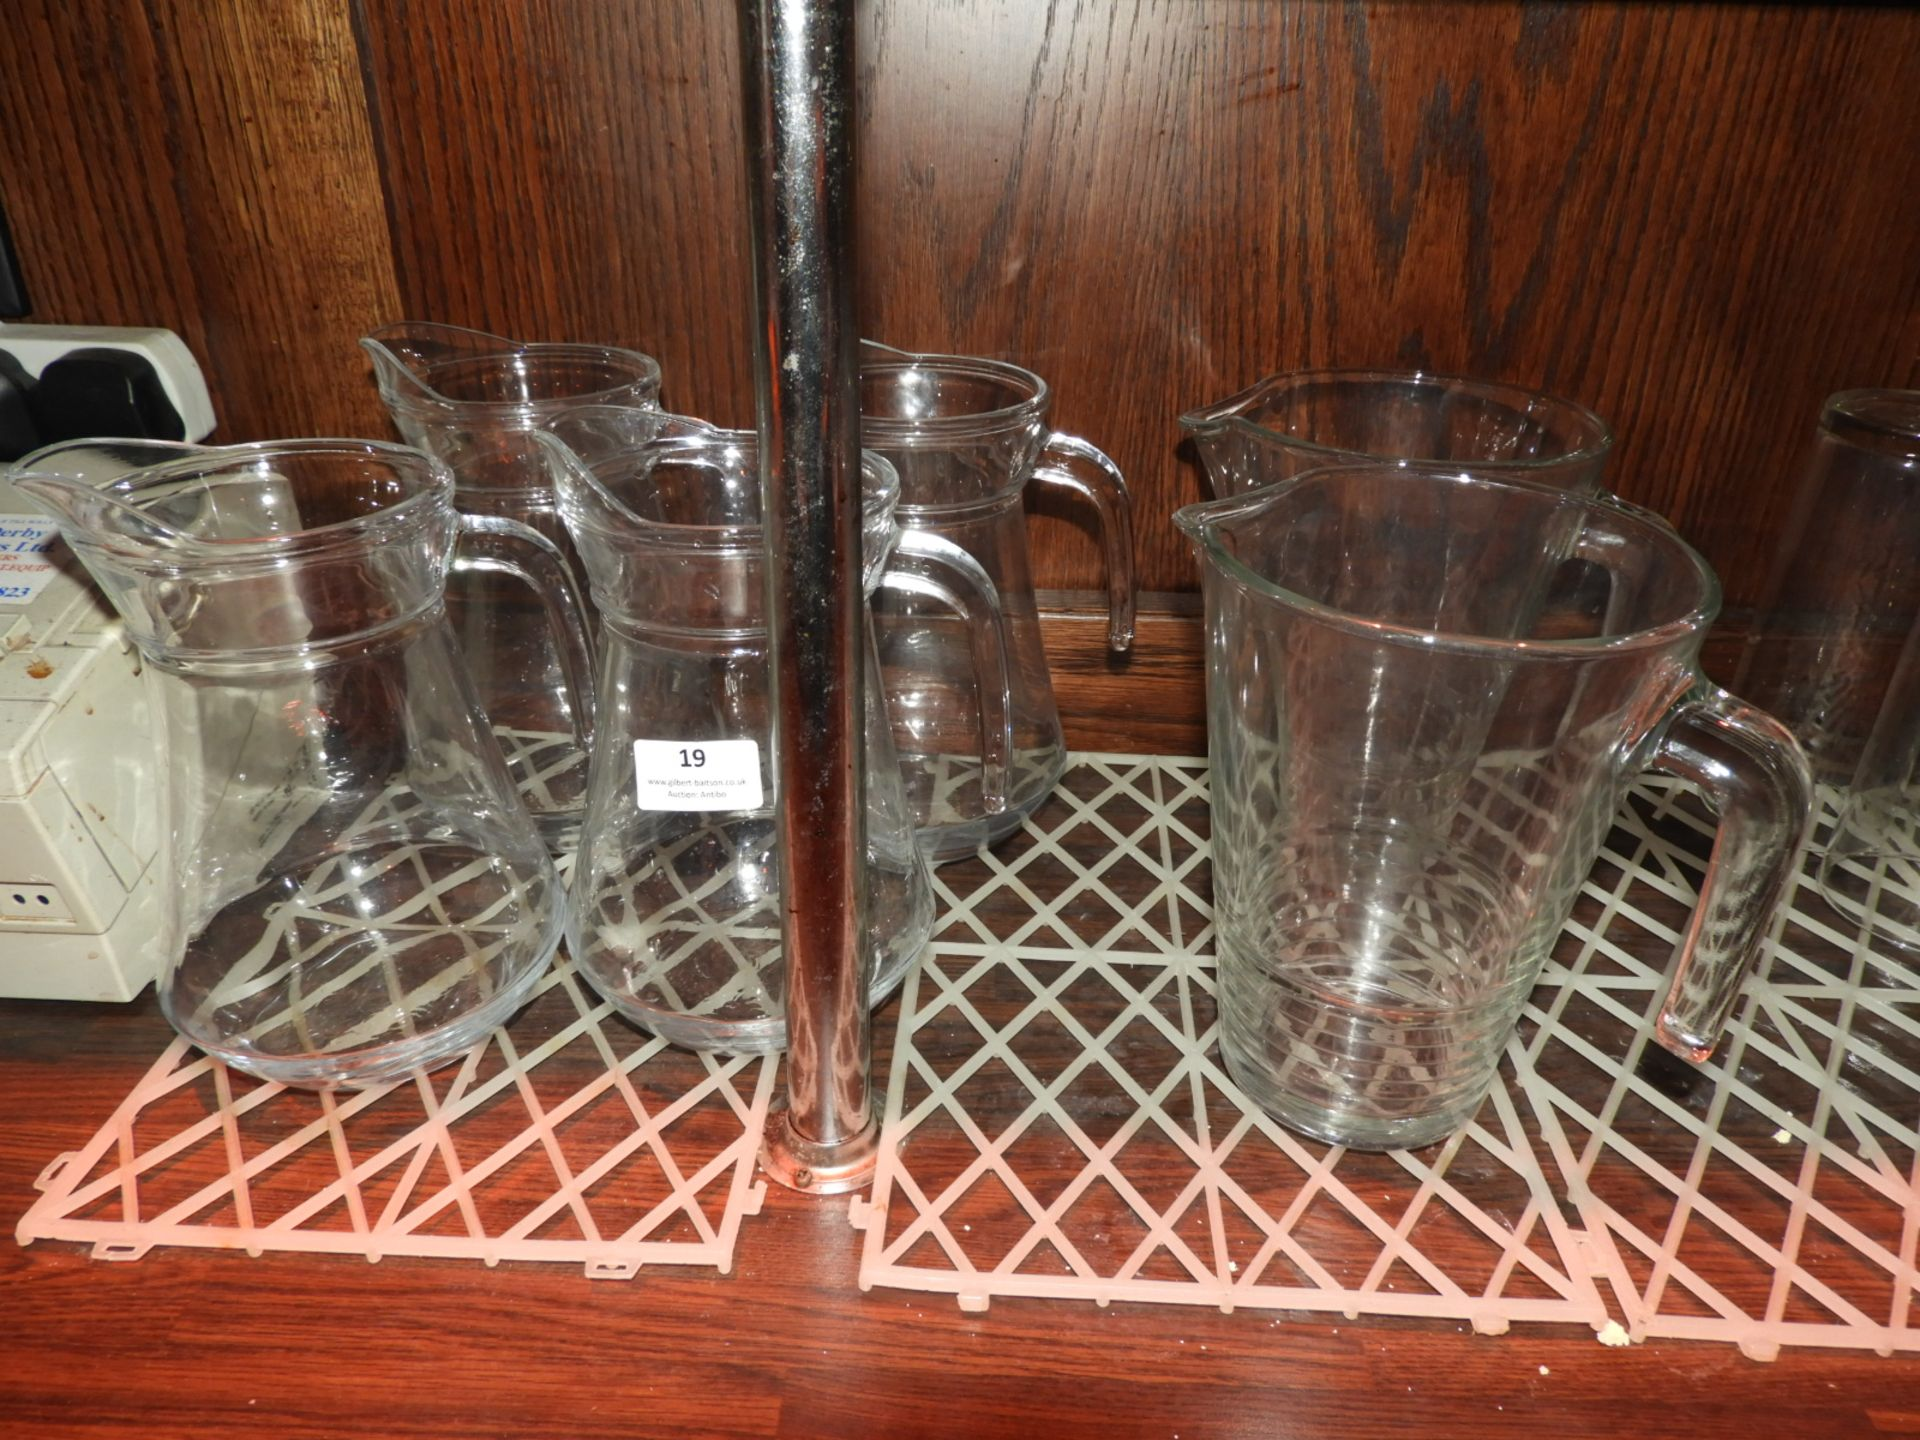 Lot 19 - *Six Water Jugs